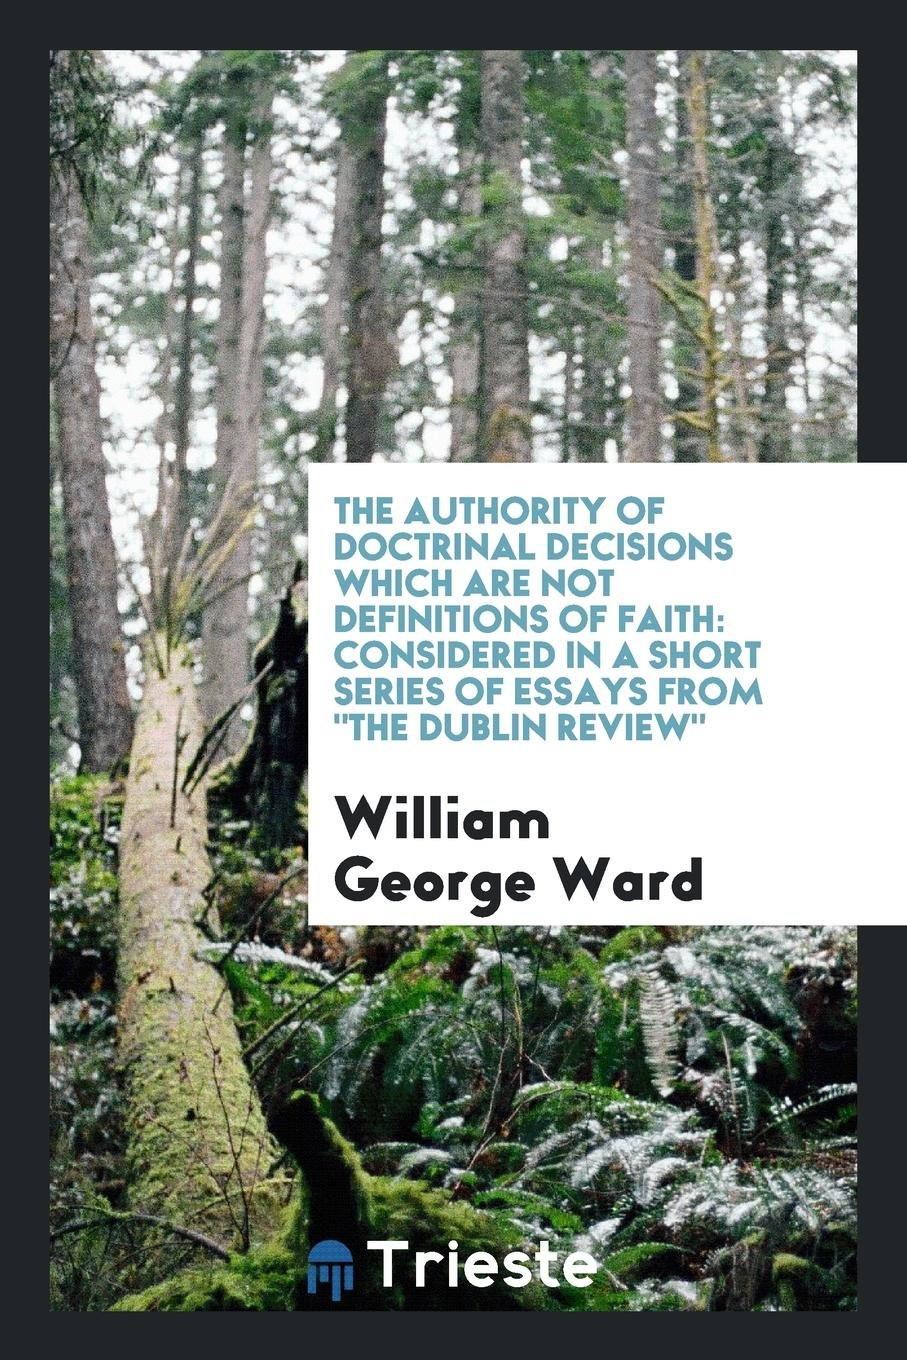 """The Authority of Doctrinal Decisions which are Not Definitions of Faith: Considered in a Short Series of Essays from """"The Dublin Review"""" pdf"""